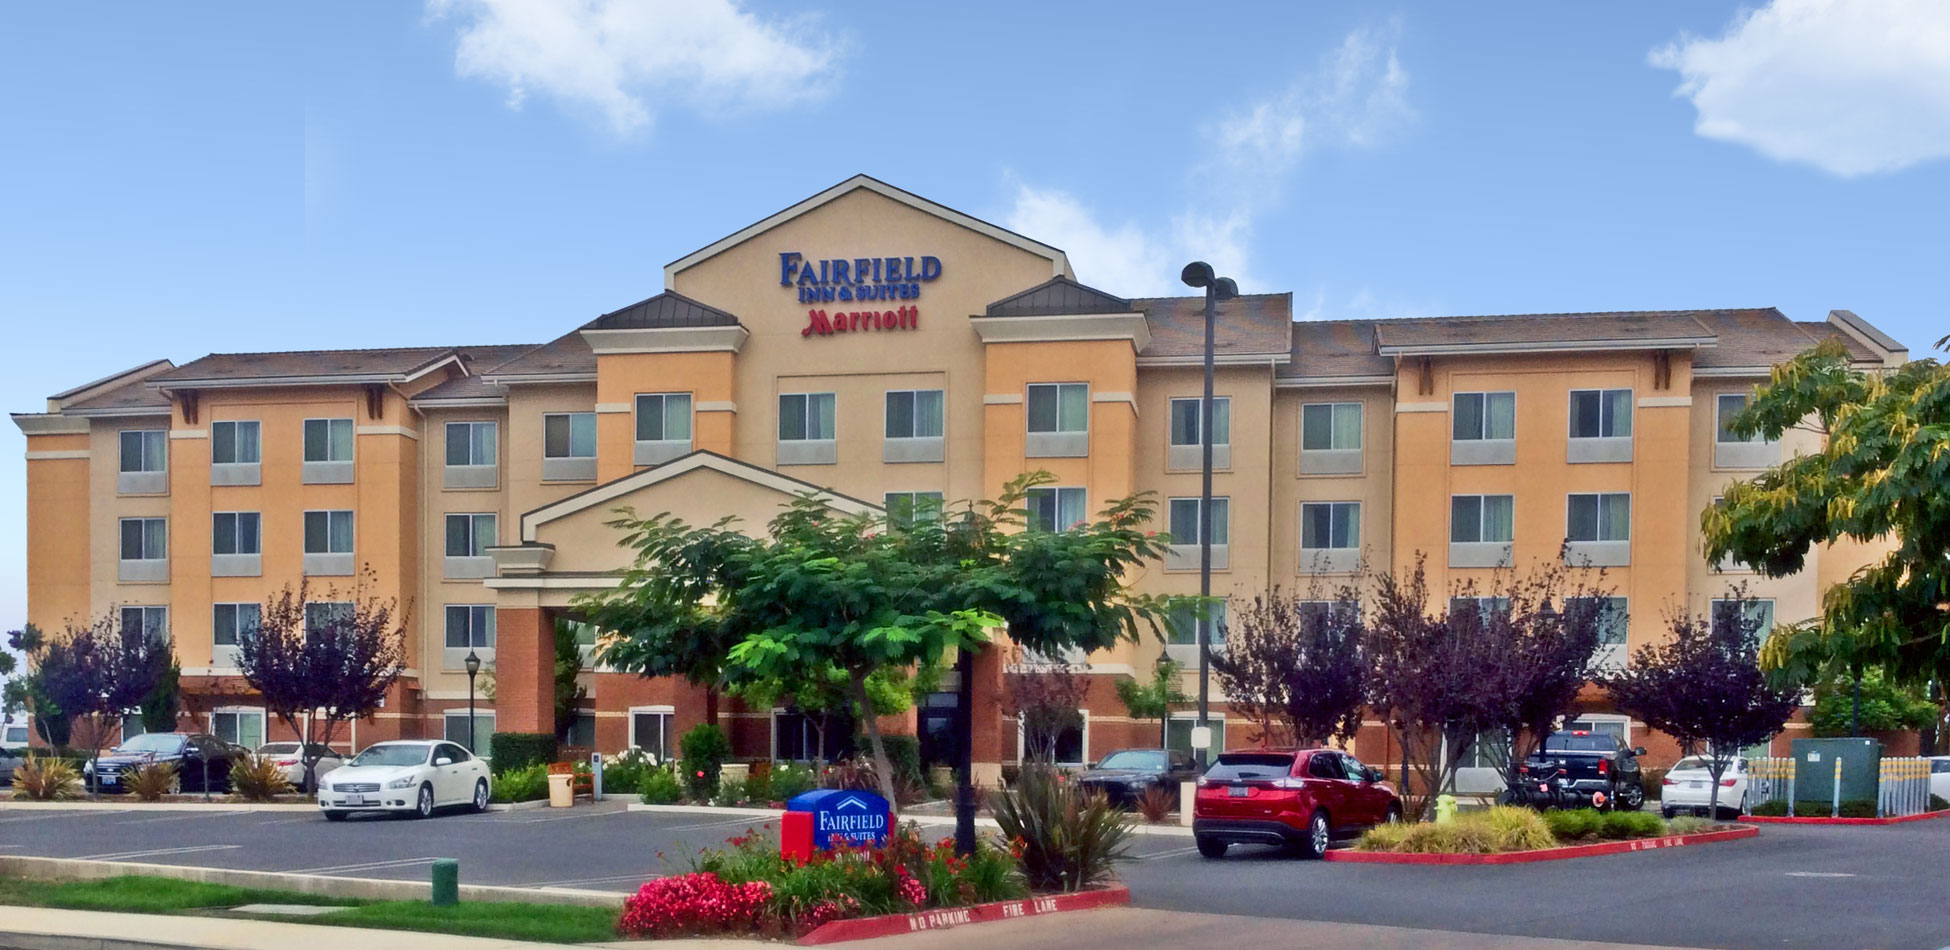 Fairfield Inn & Suites Marriott Slider 2